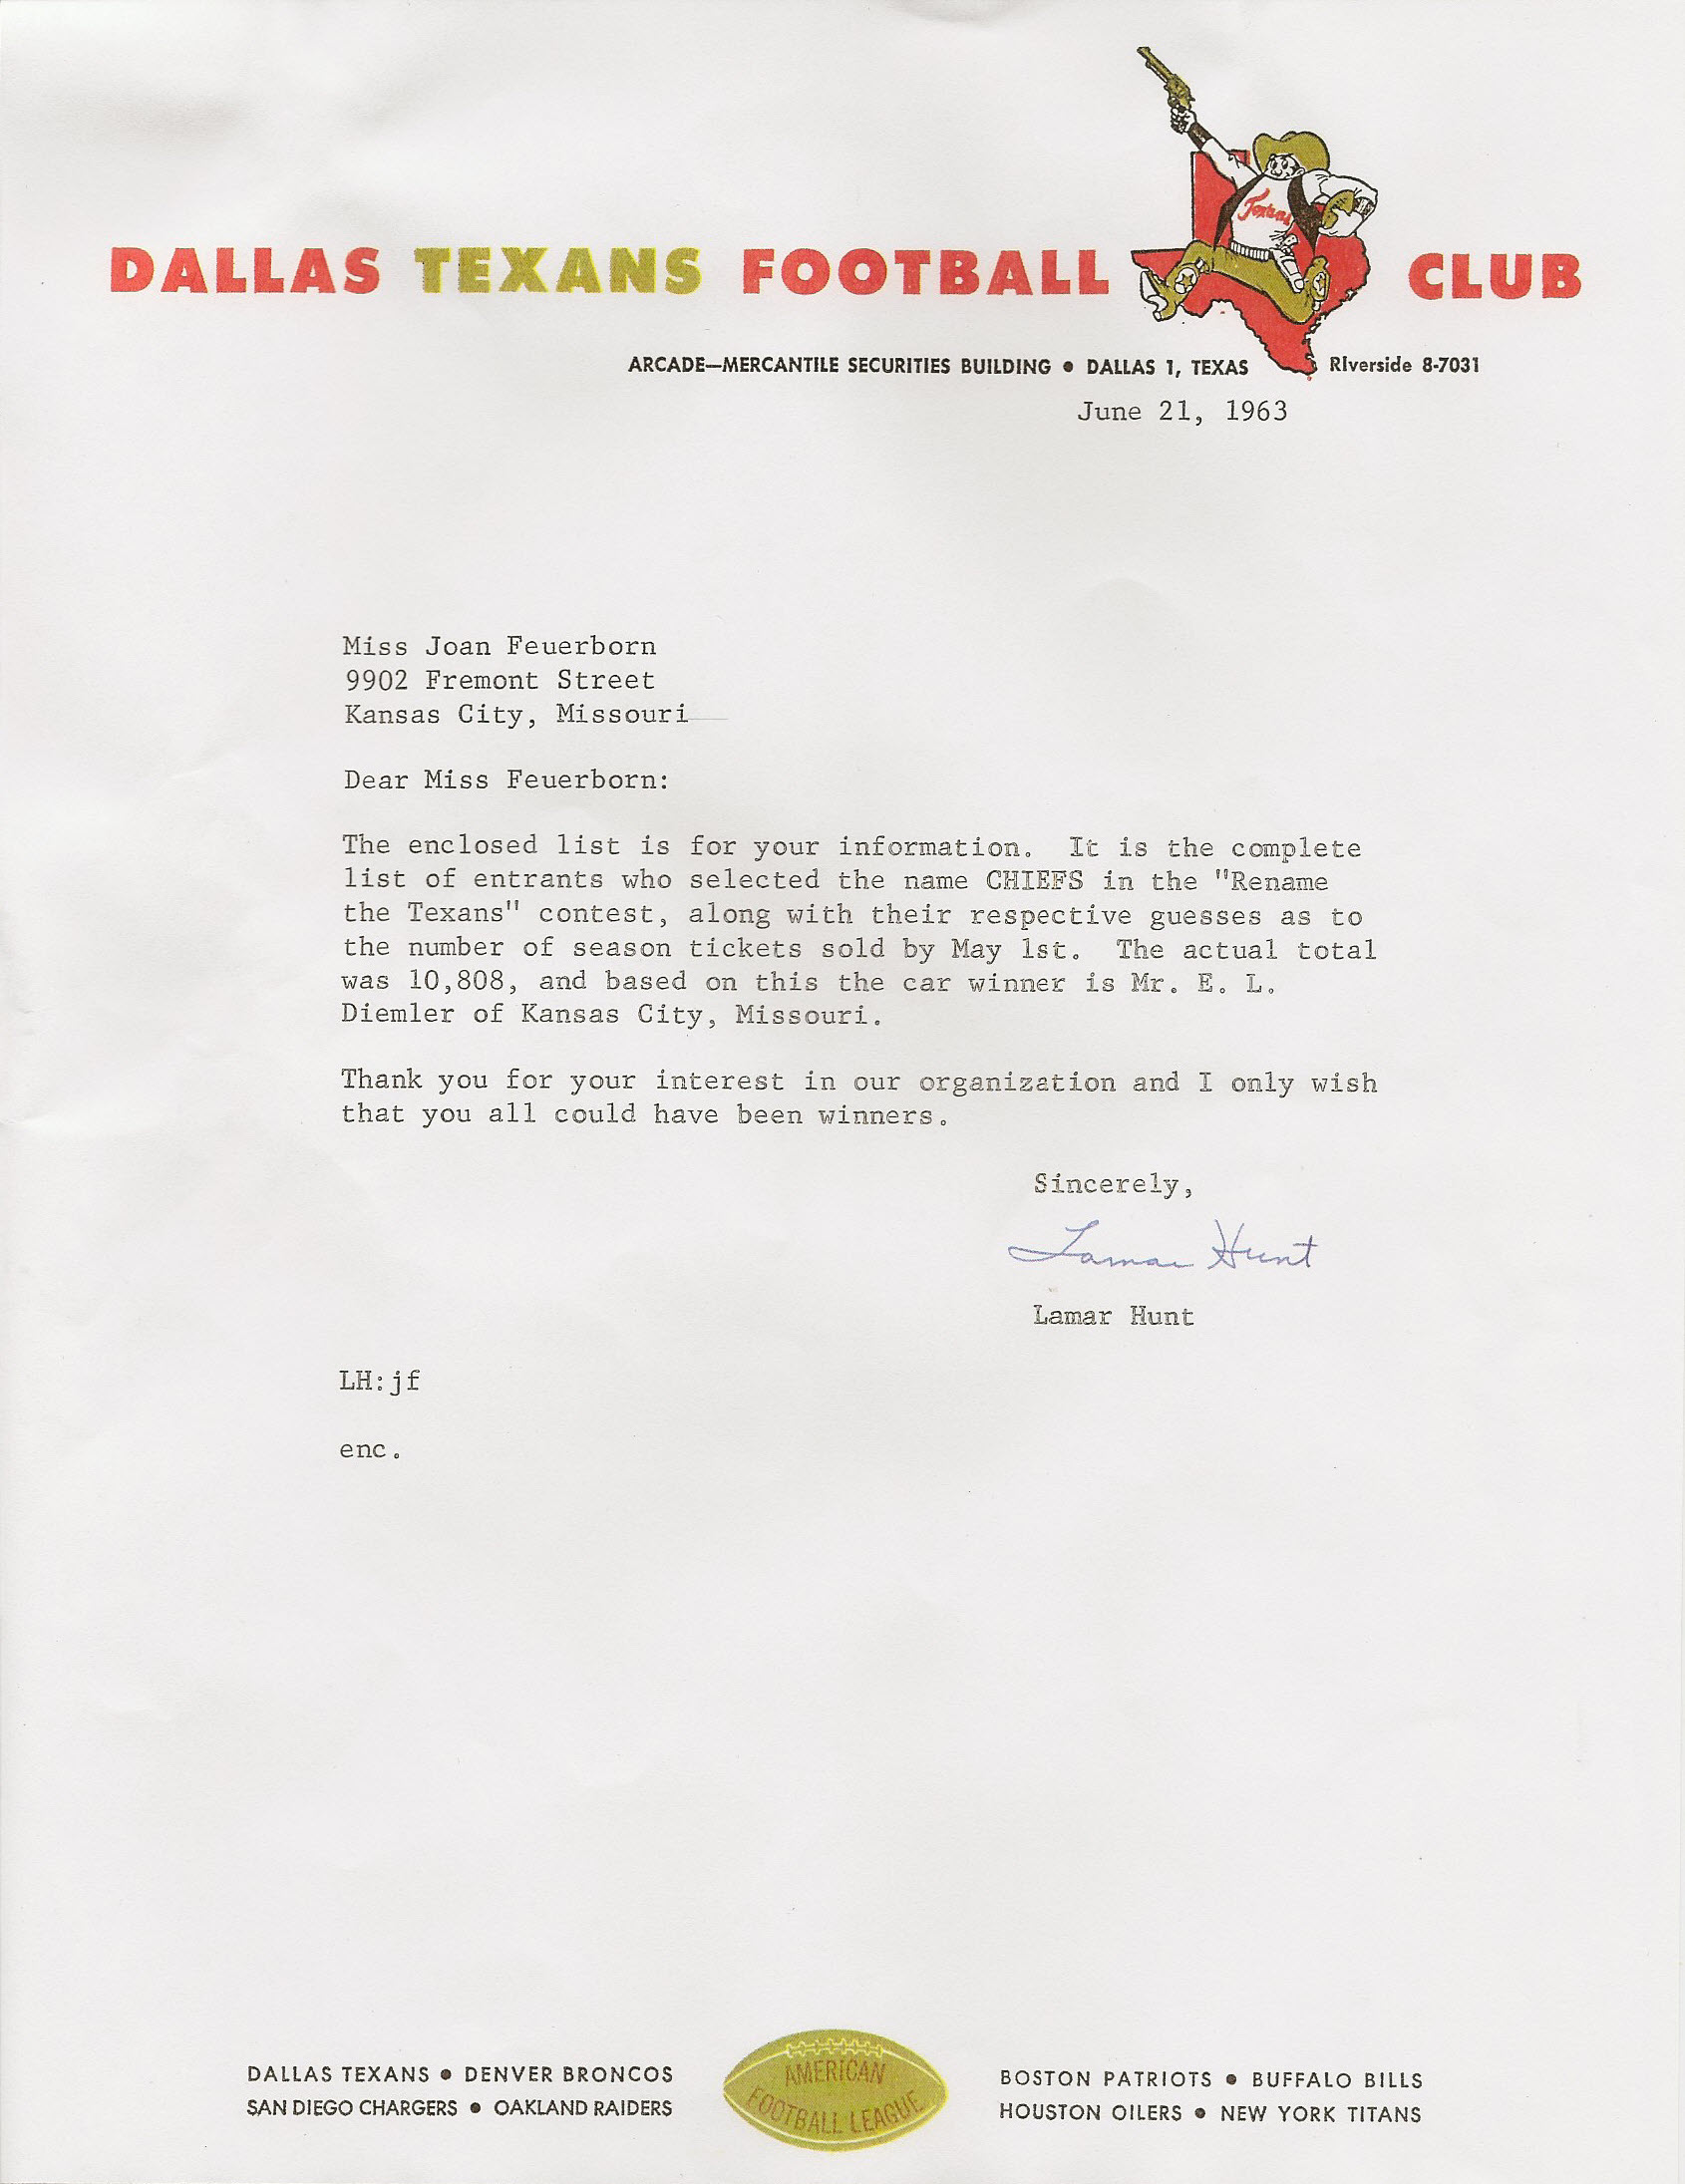 Football Club Naming Contest letter from Lamar Hunt, June 21, 1963